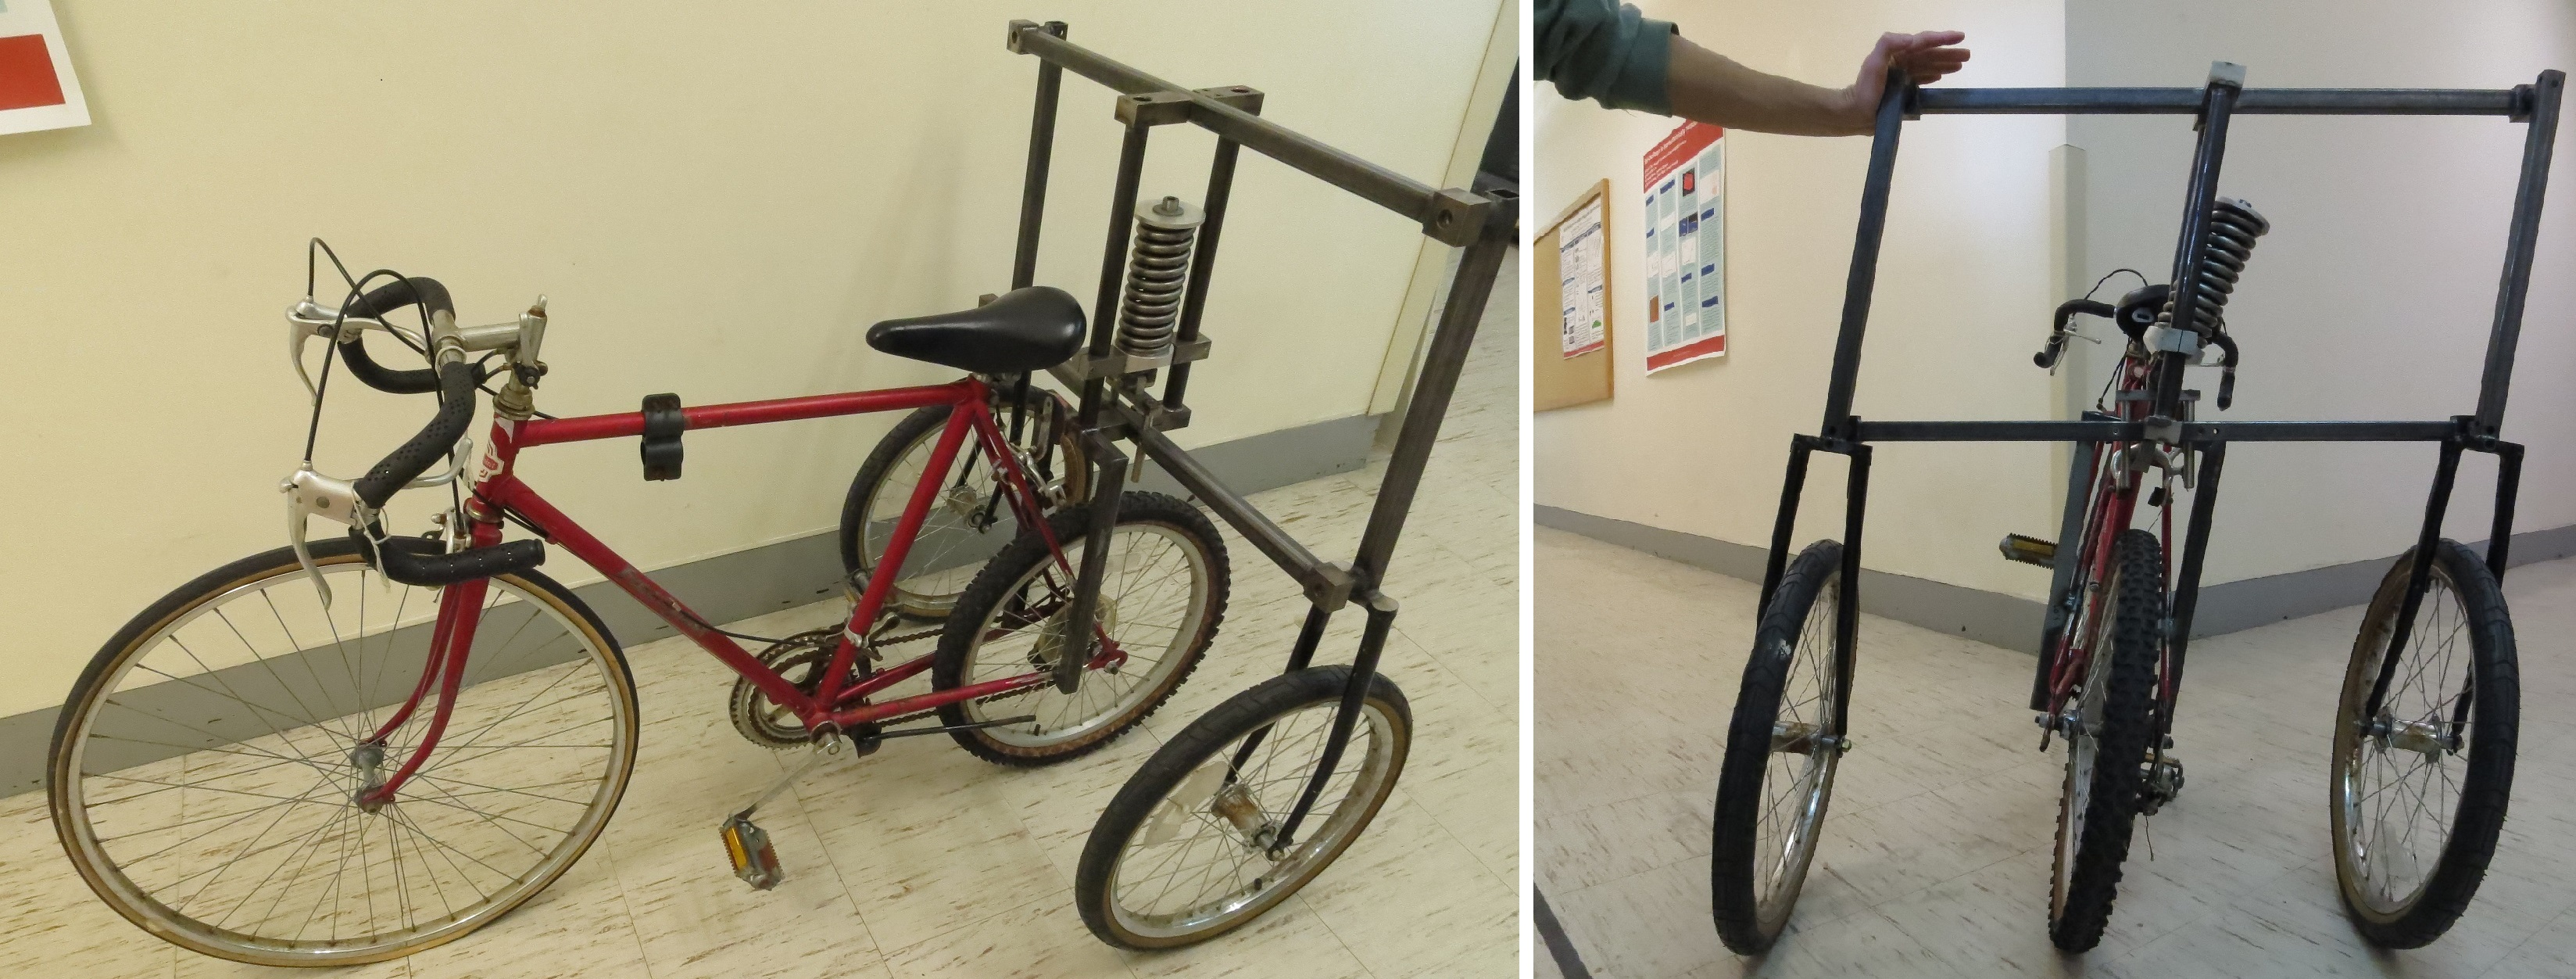 Bricycle A Bicycle In Zero Gravity Is Unrideable